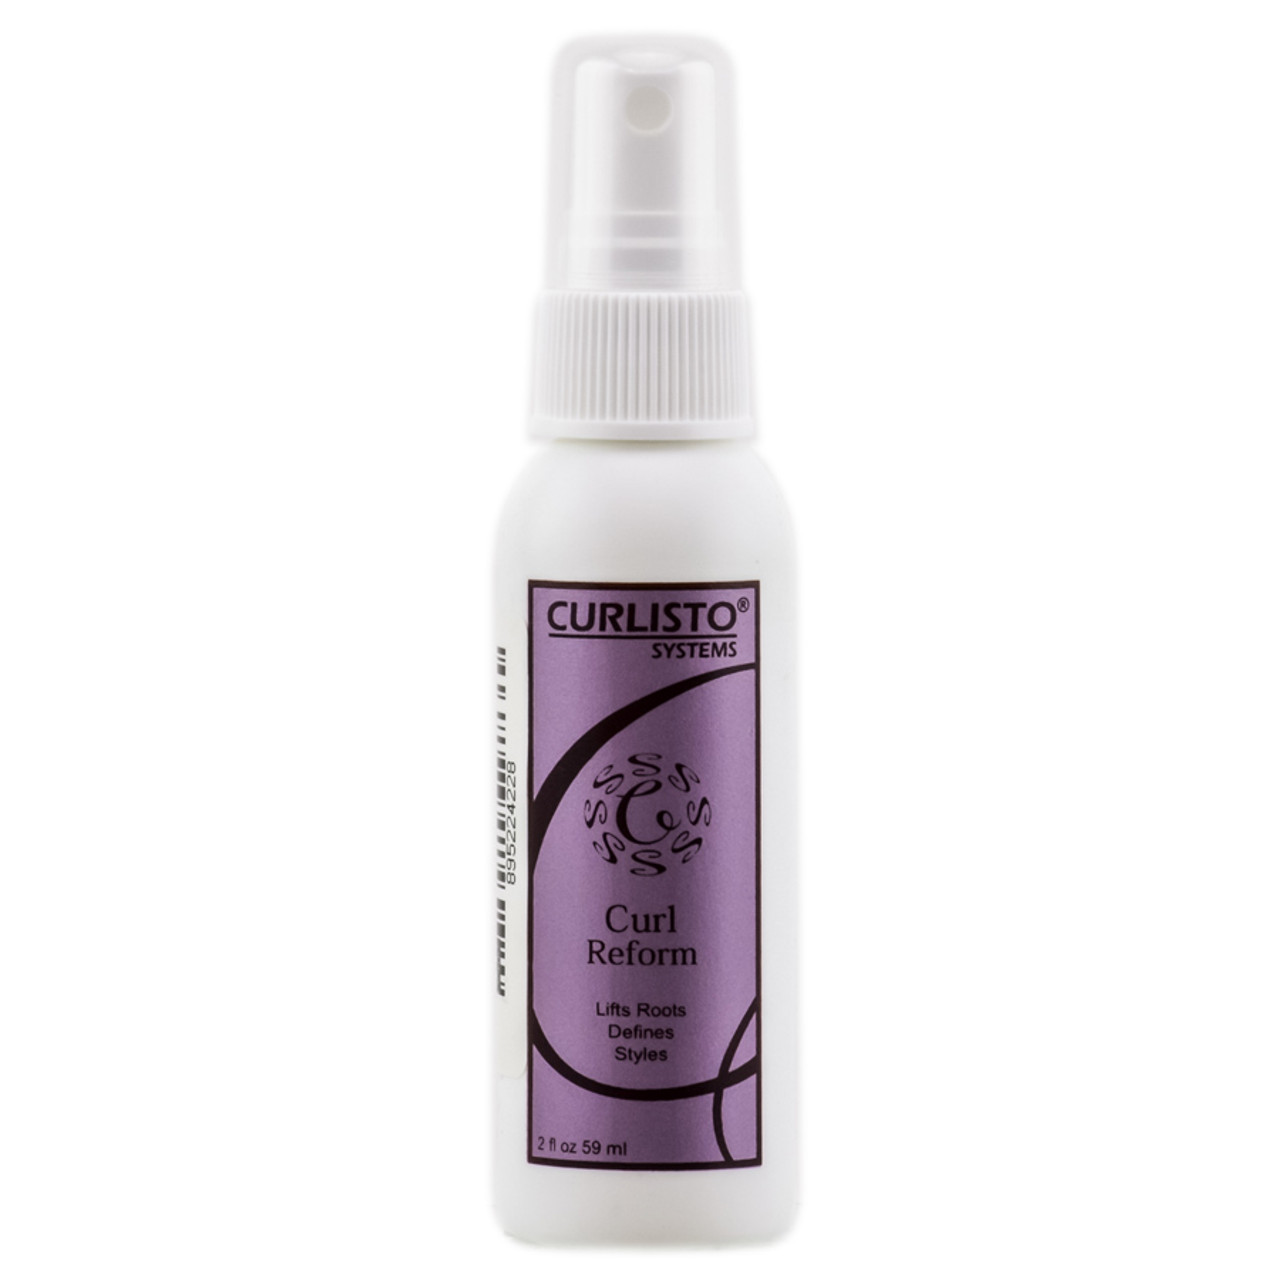 Find top rated allergen free hypoallergenic hair care products that are gentle for your skin.